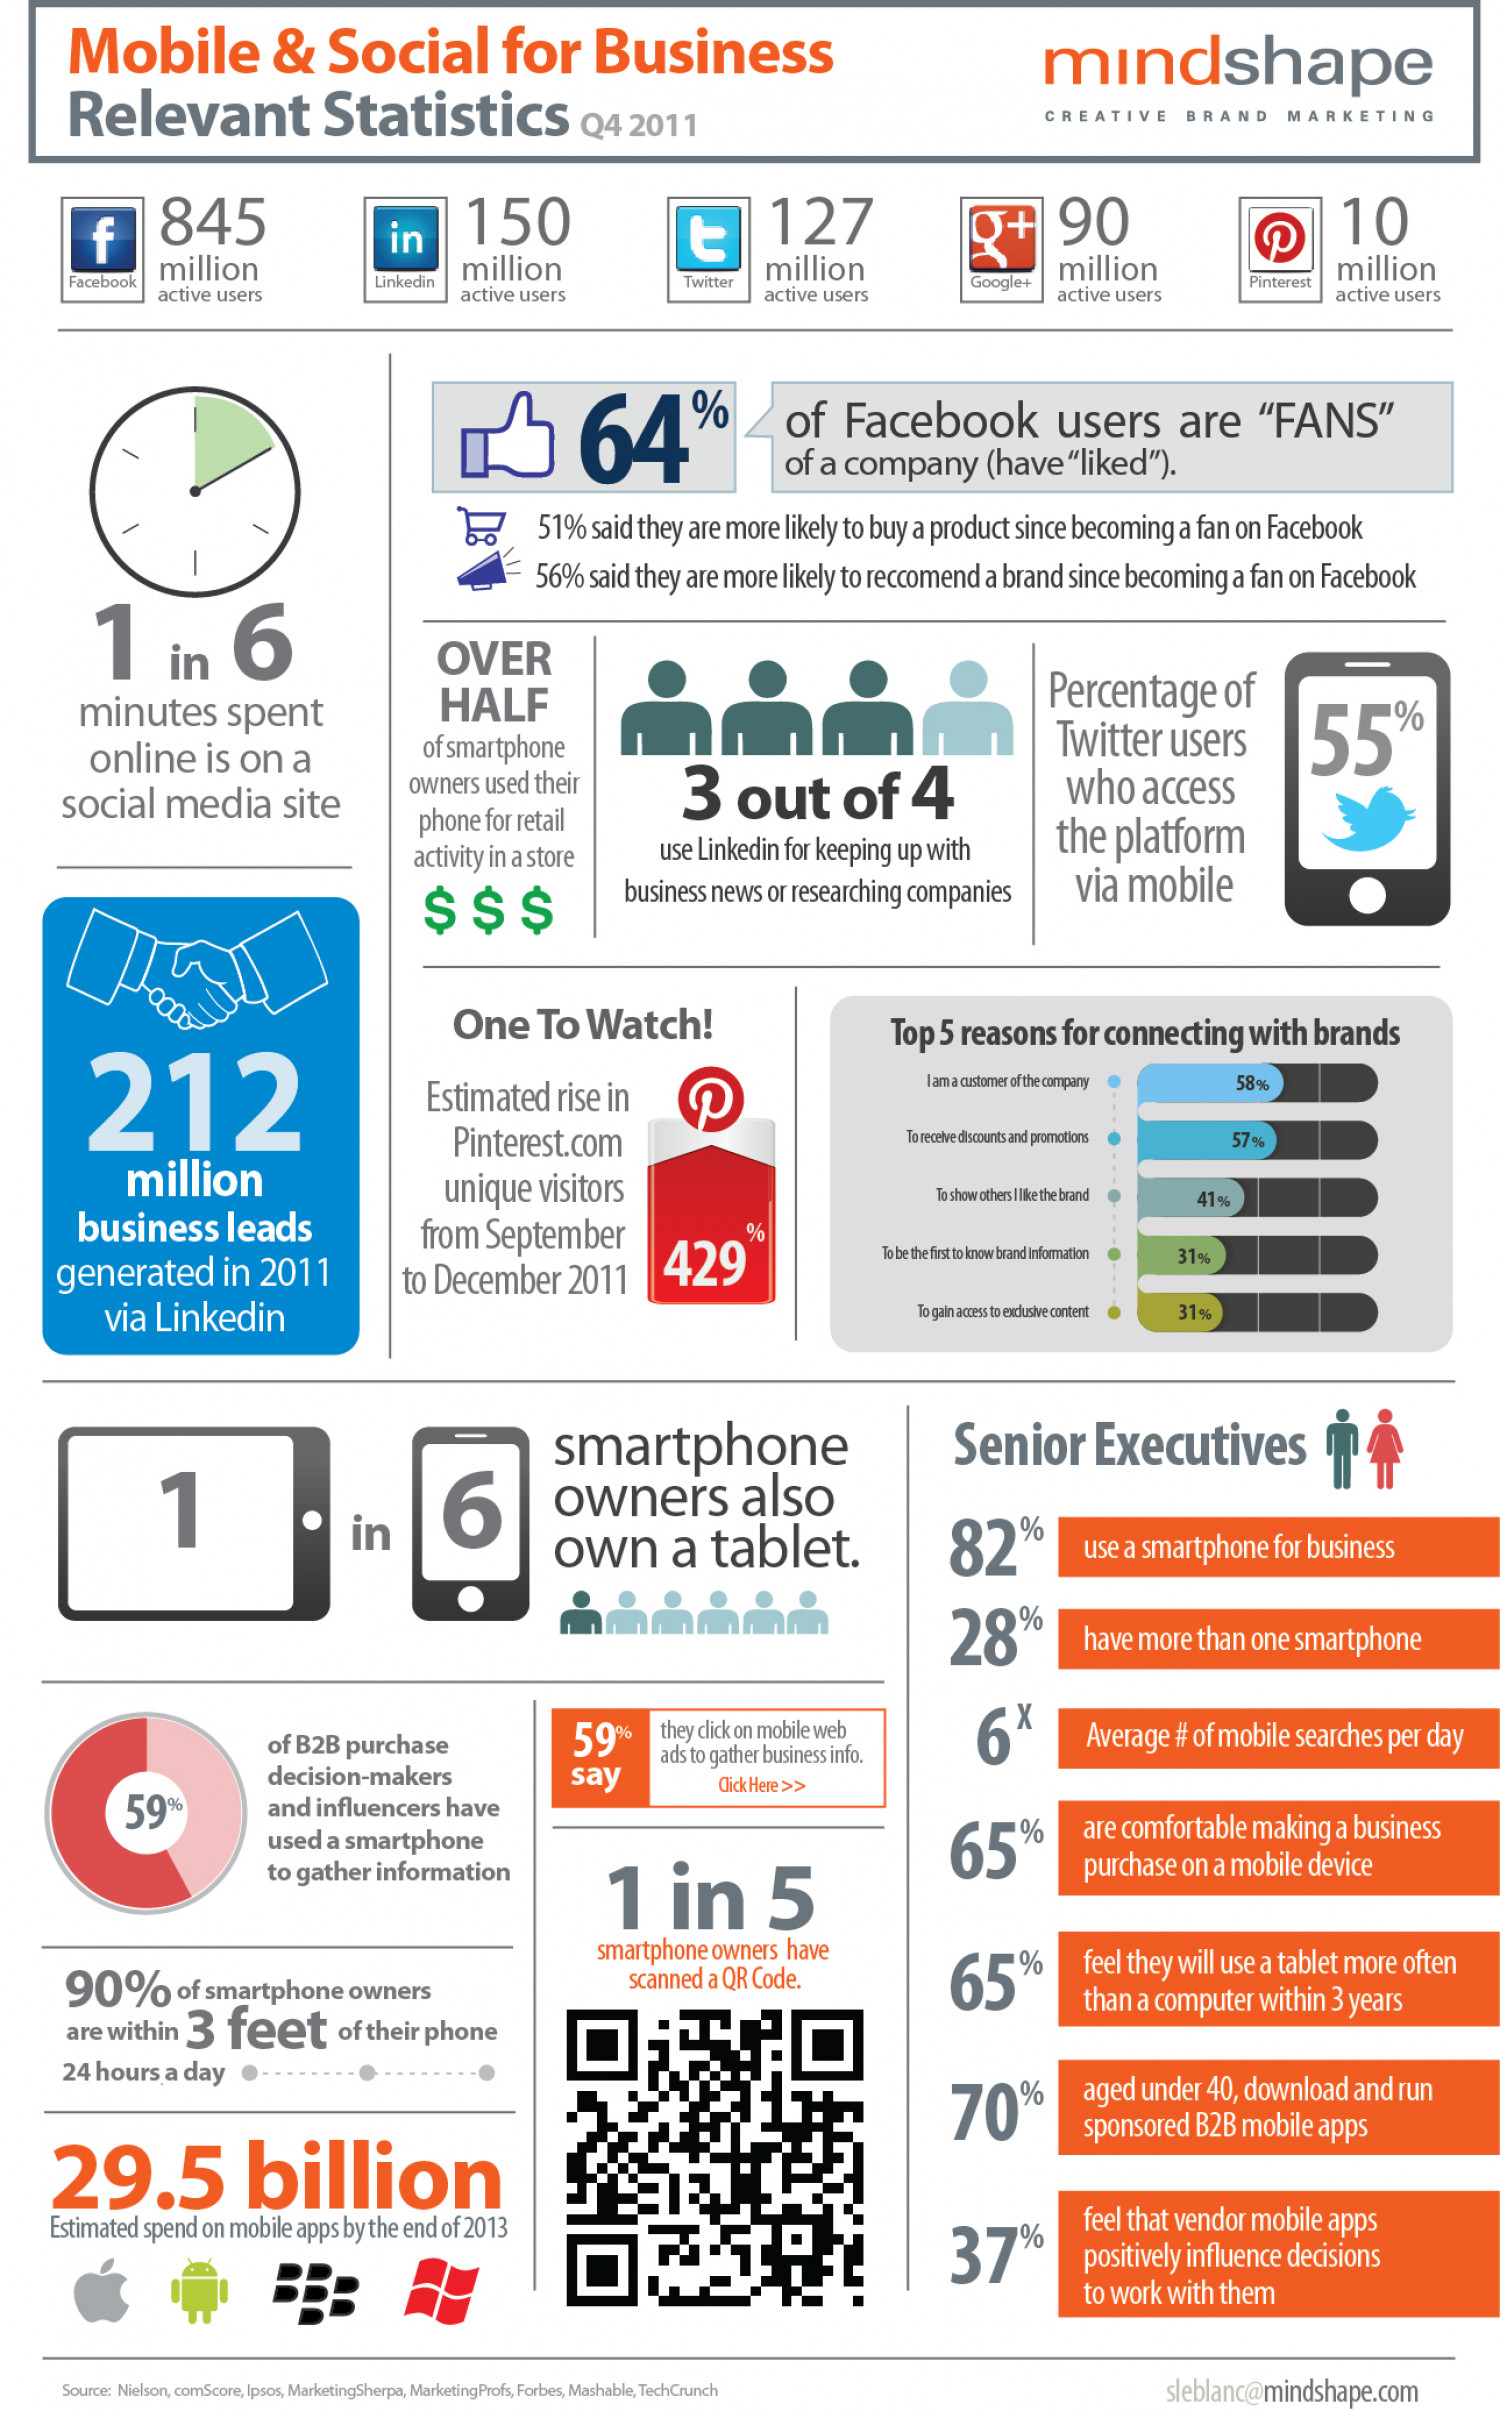 Mobile & Social for Business Infographic